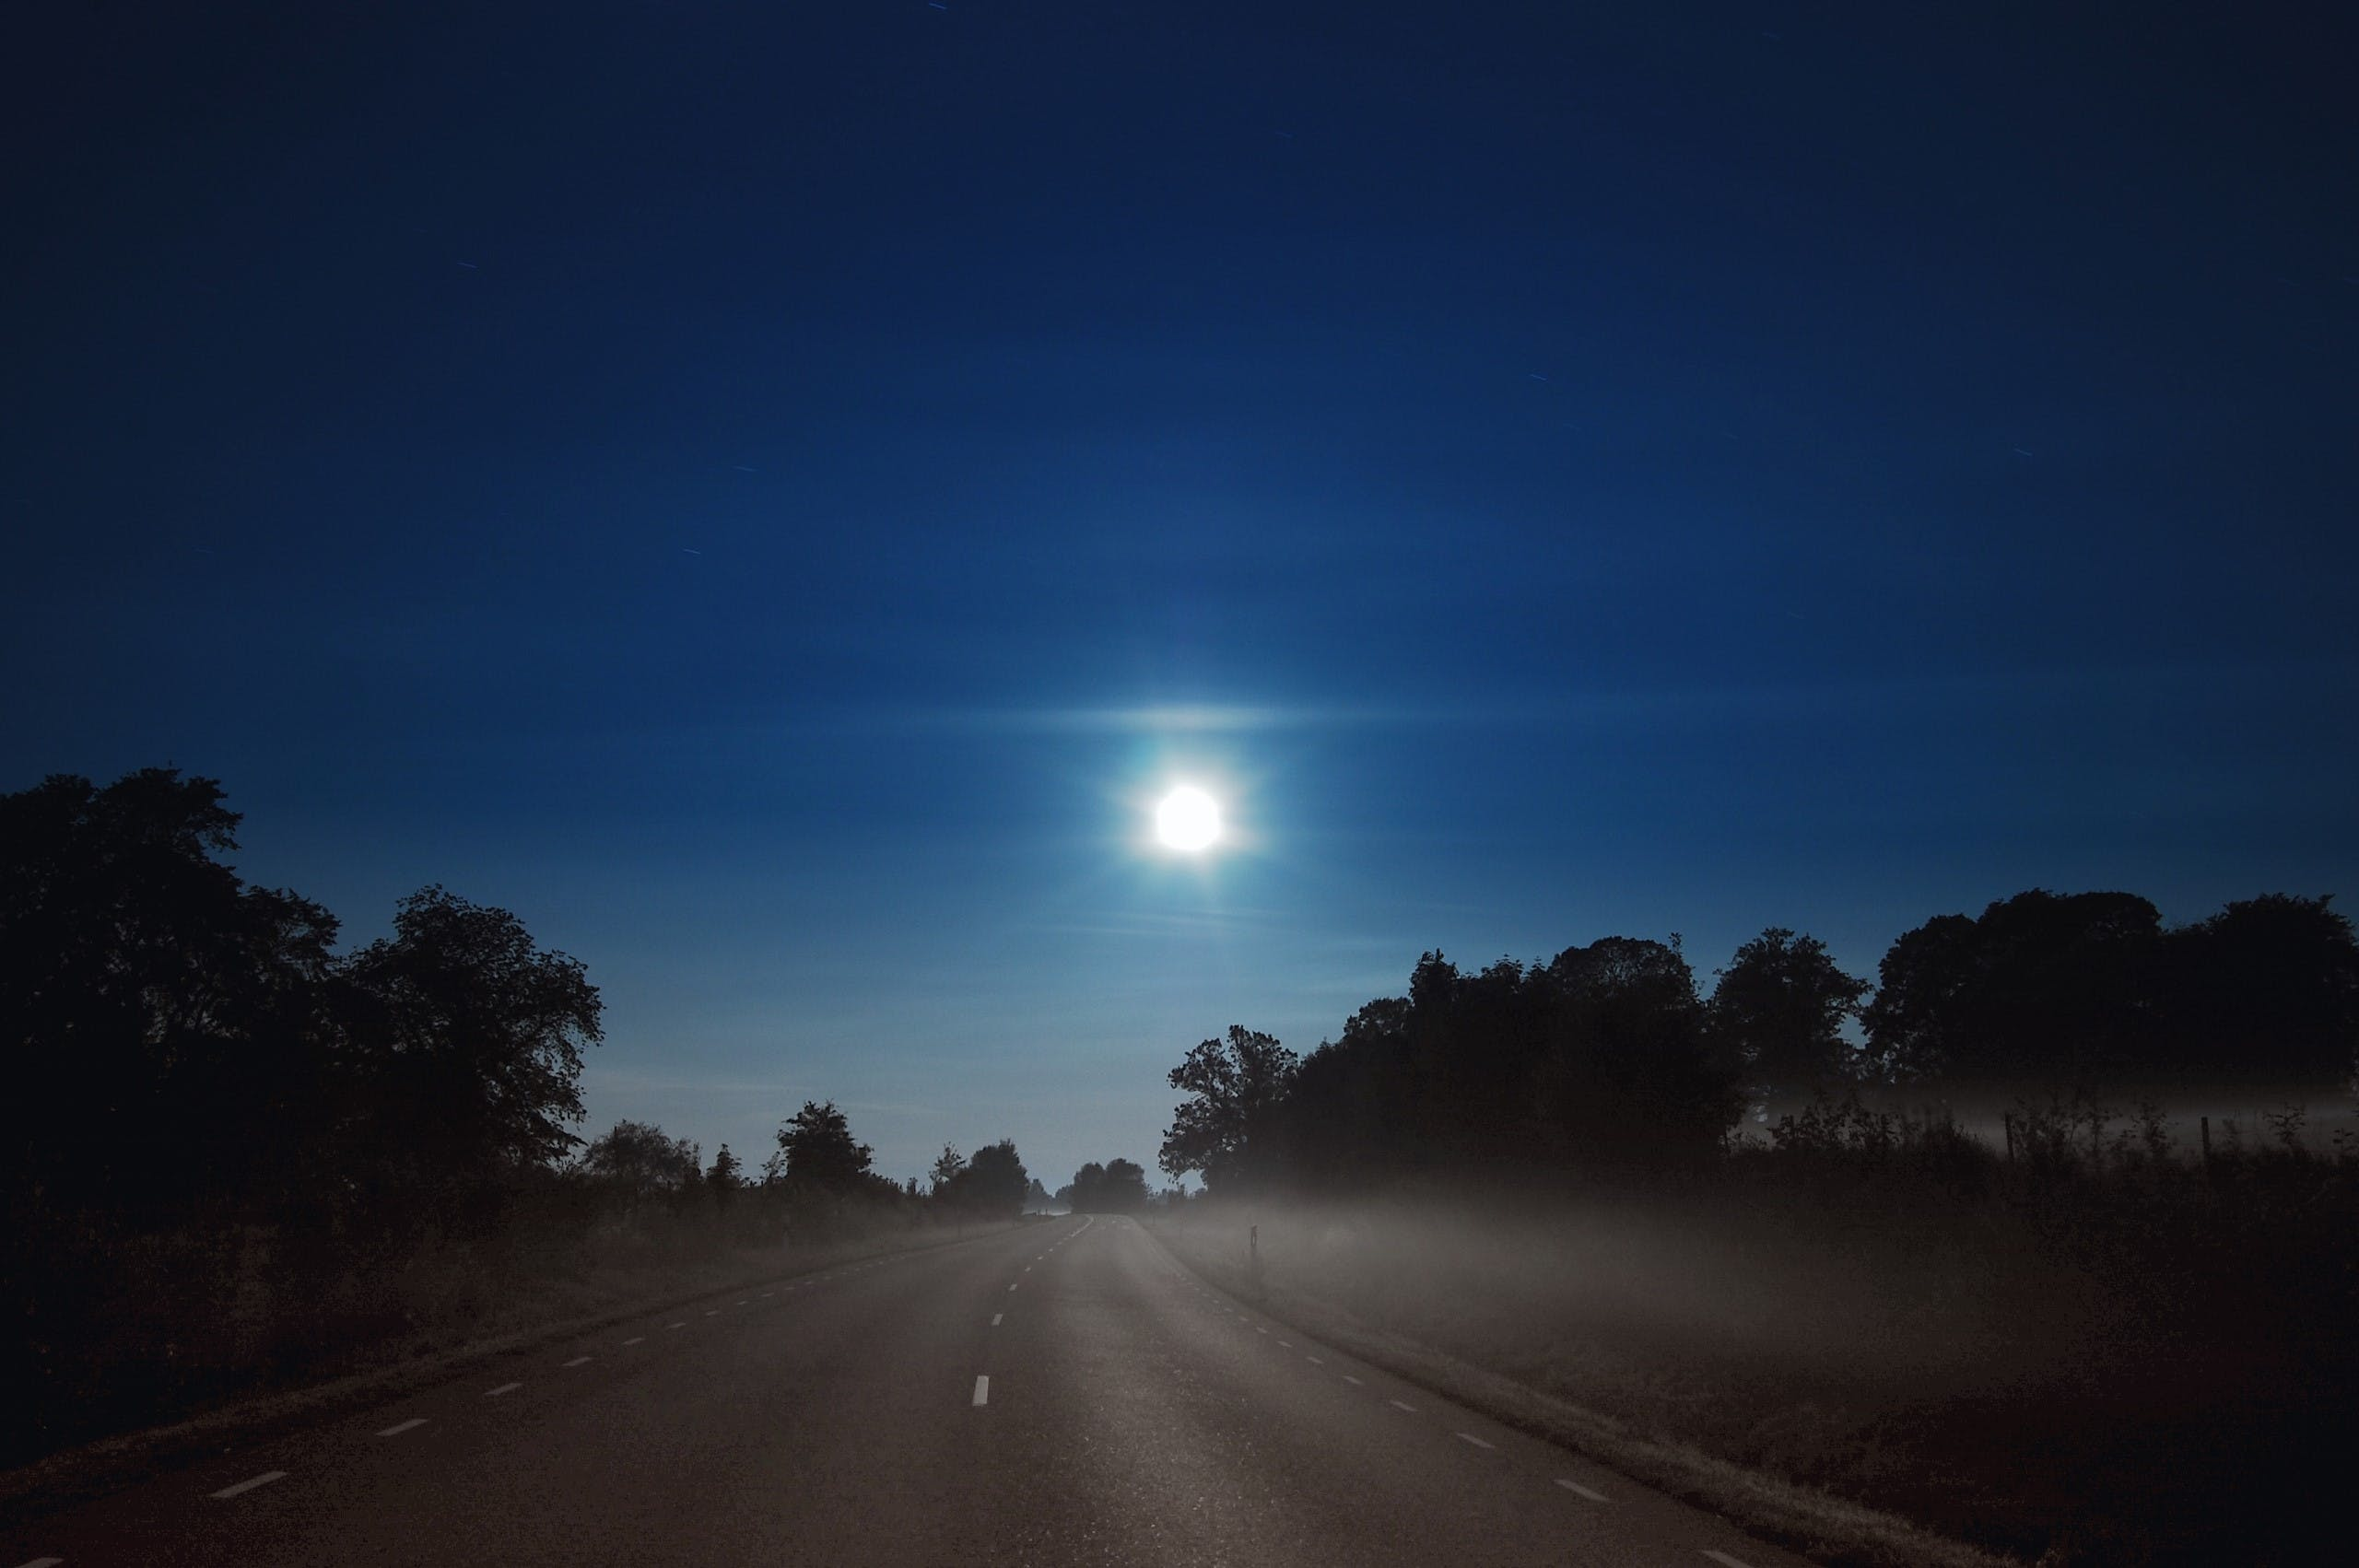 Free stock photo of road, landscape, nature, night